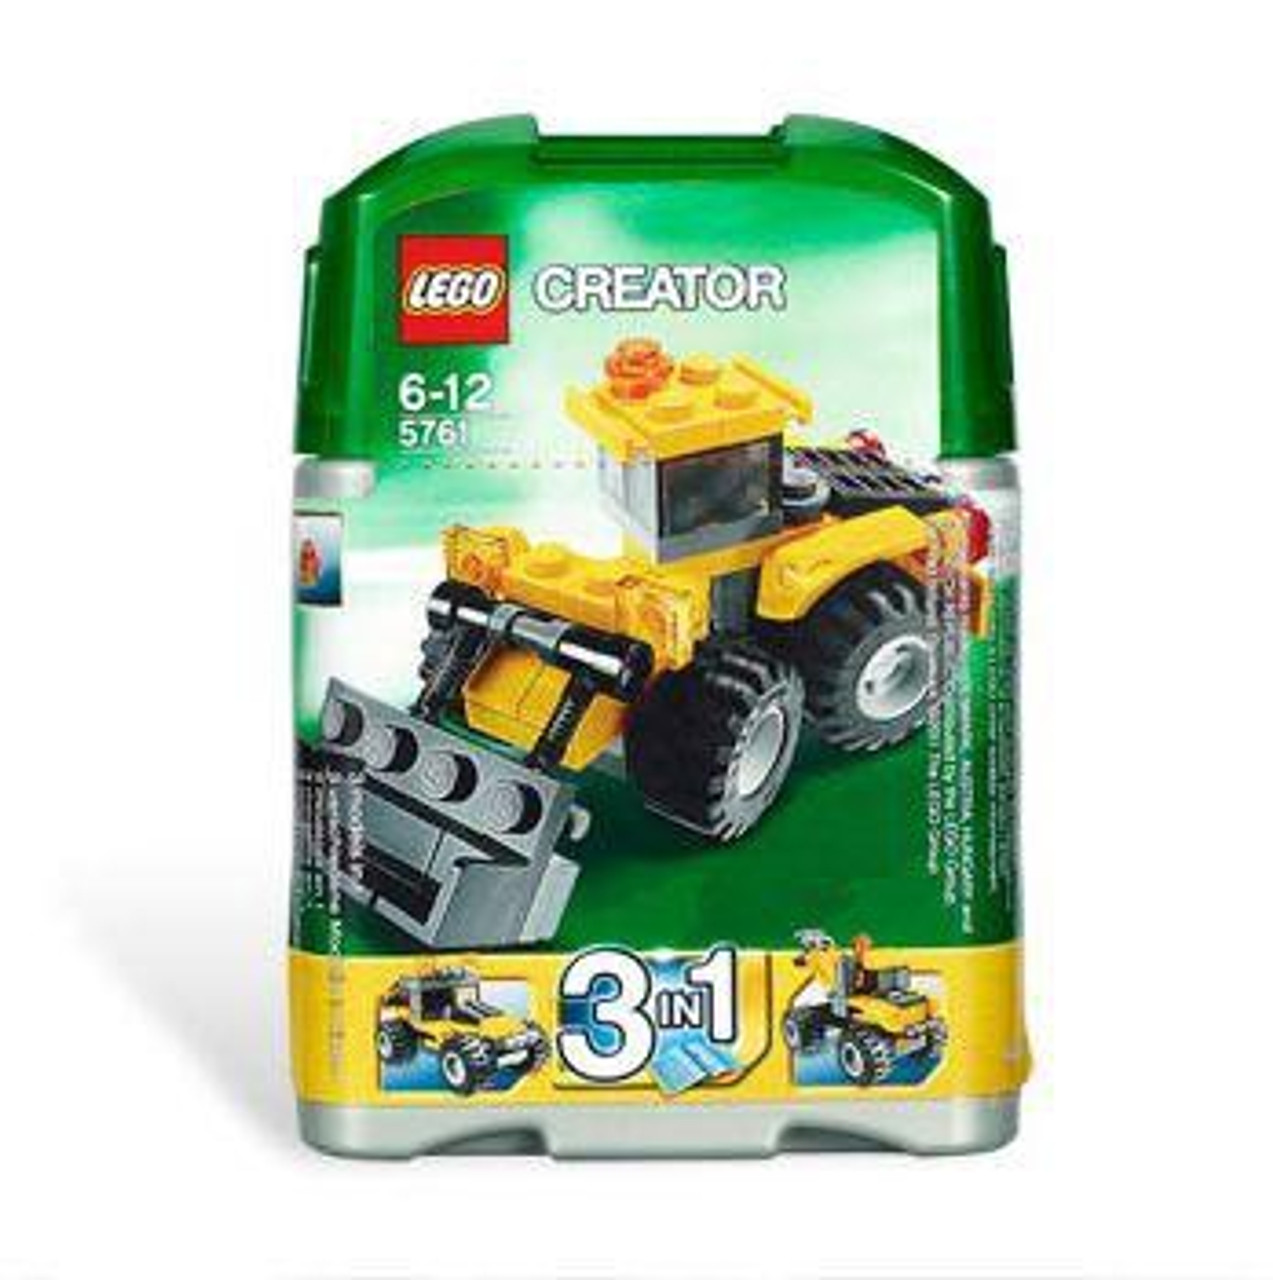 LEGO Creator Mini Digger Set #5761